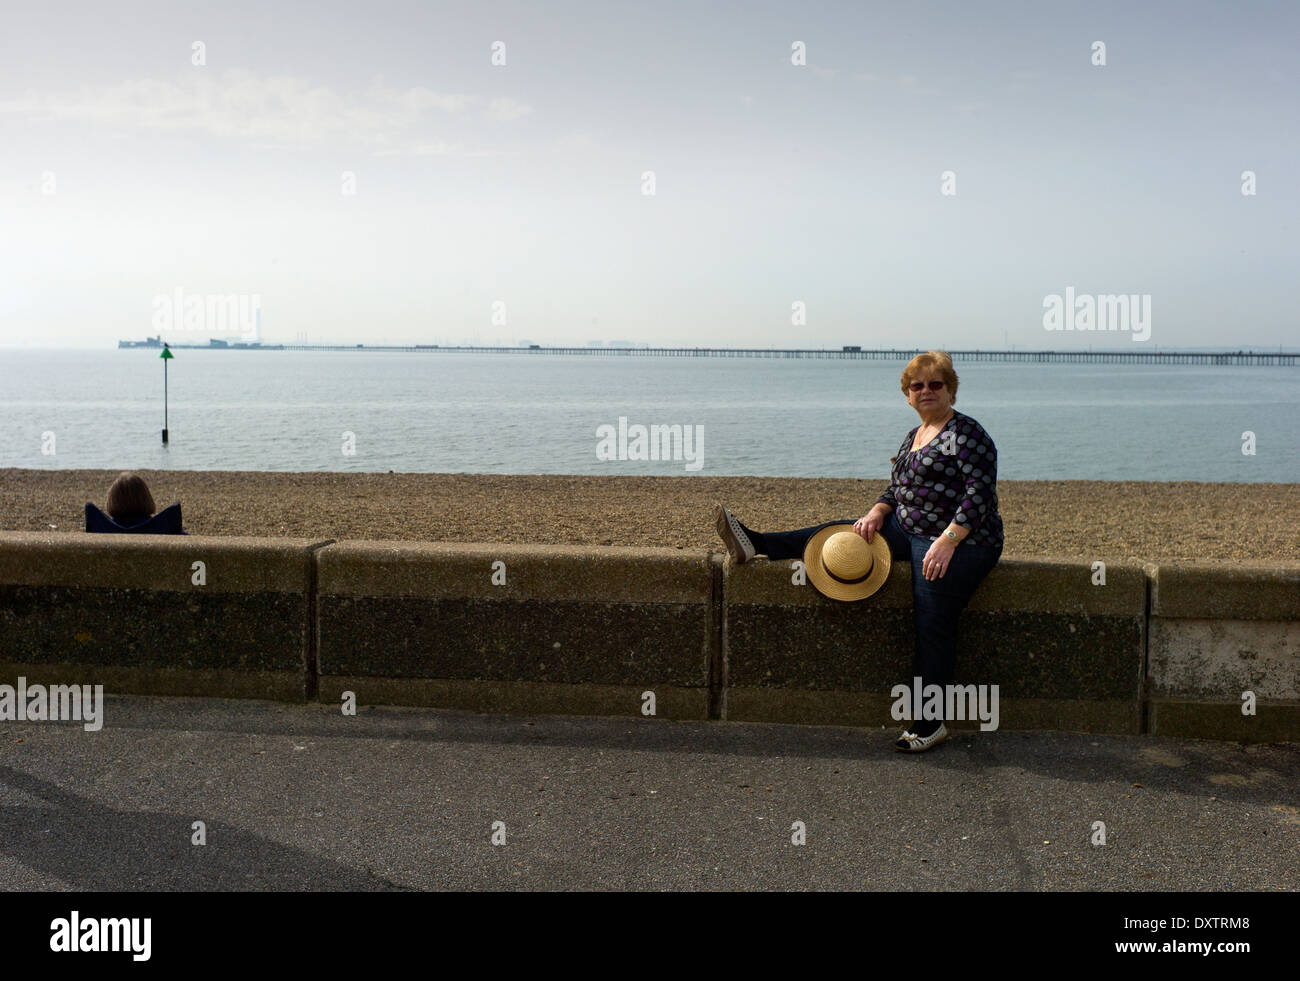 Southend-on-Sea, Essex, England. 30 March 2014 - Stock Image